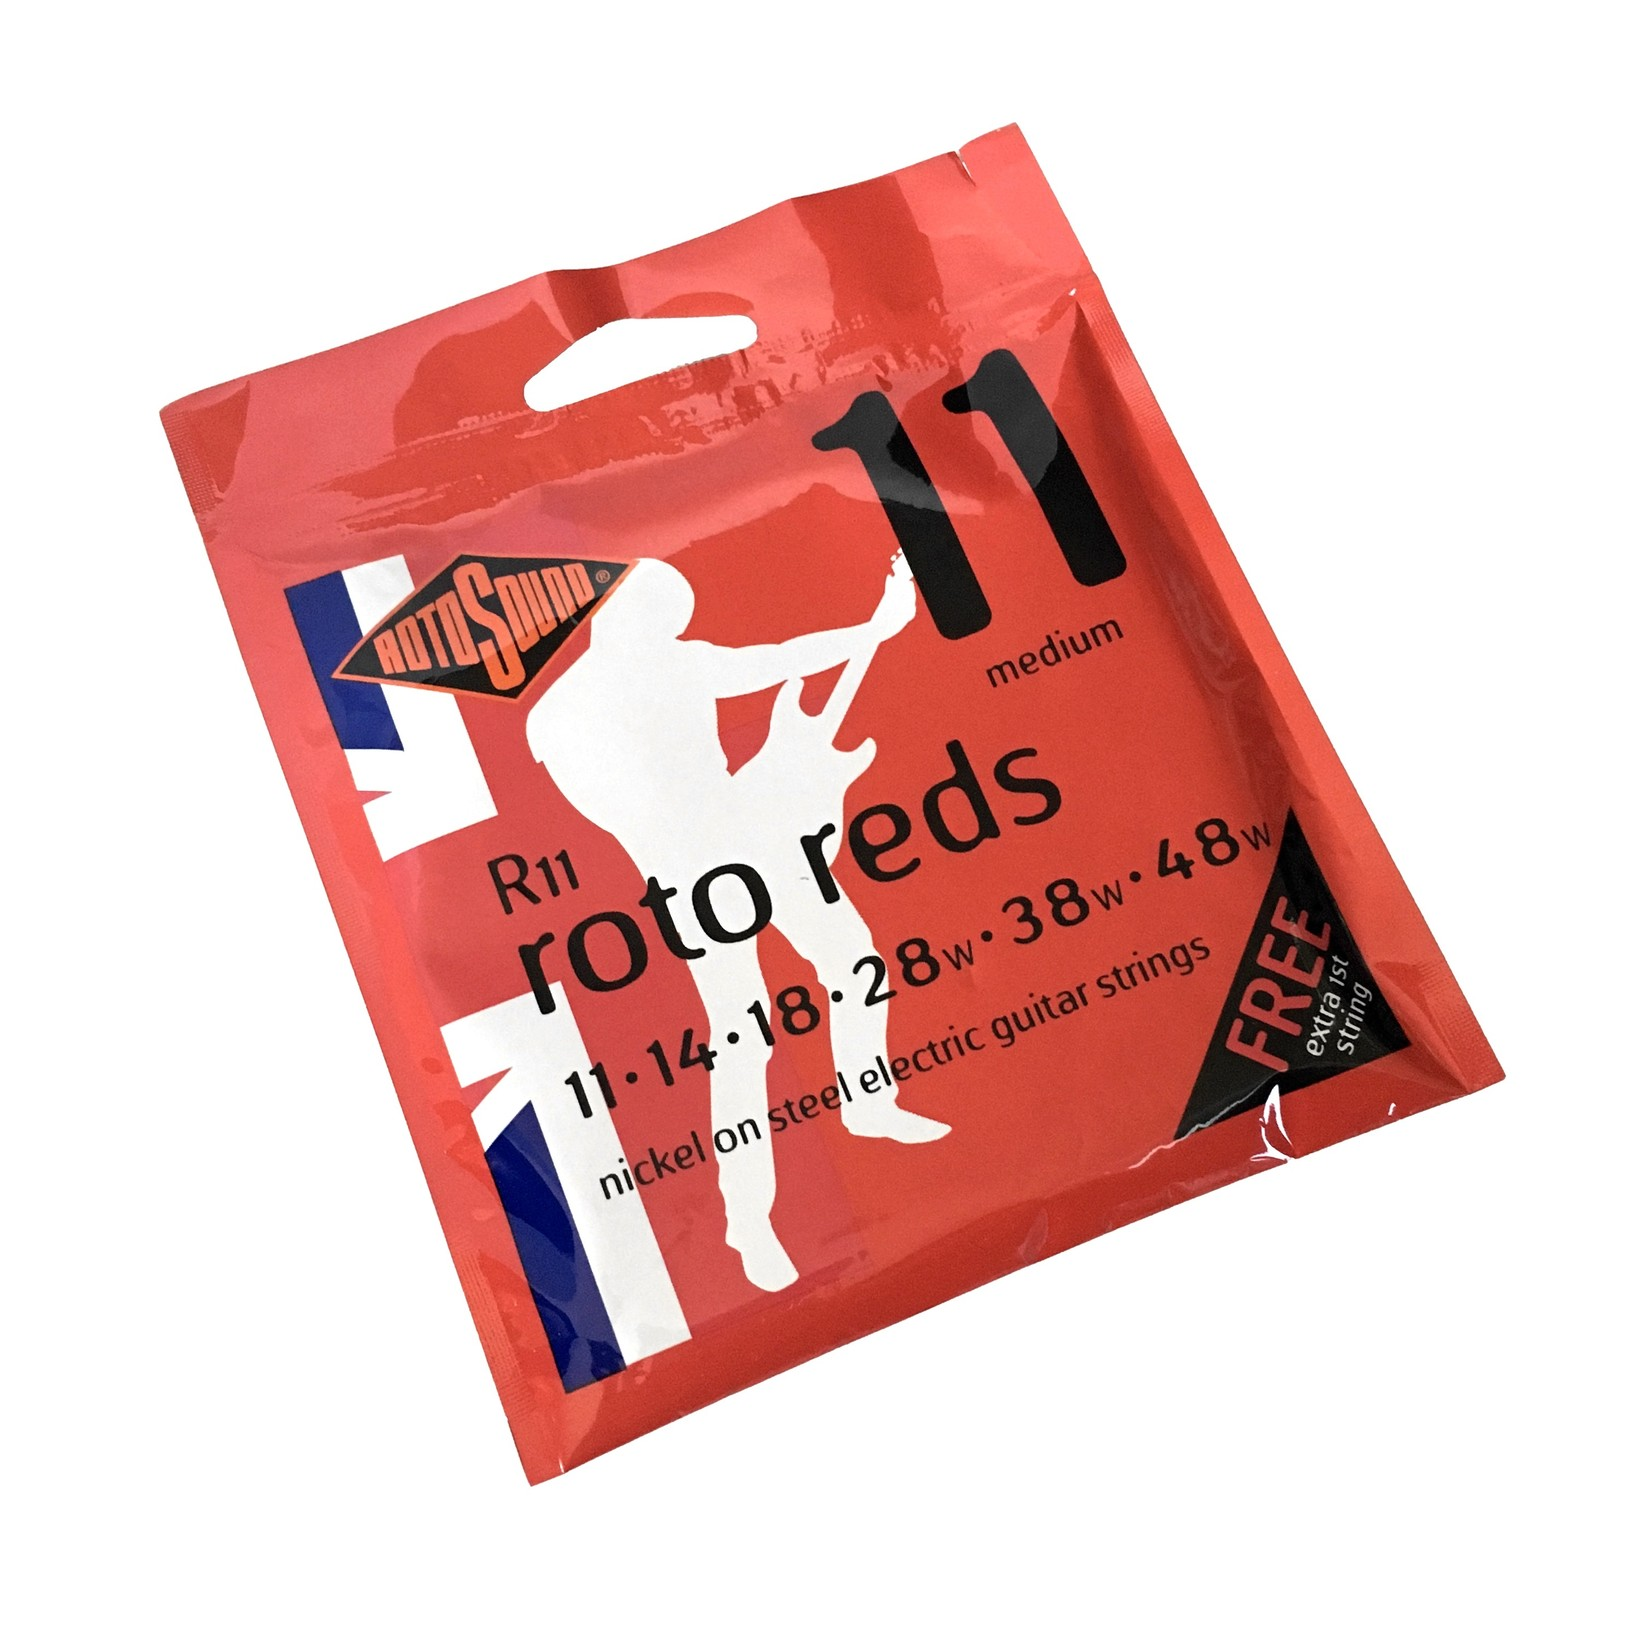 Rotosound 3x (three packs) Rotosound R11 Roto Reds Nickel on Steel Electric Guitar Strings